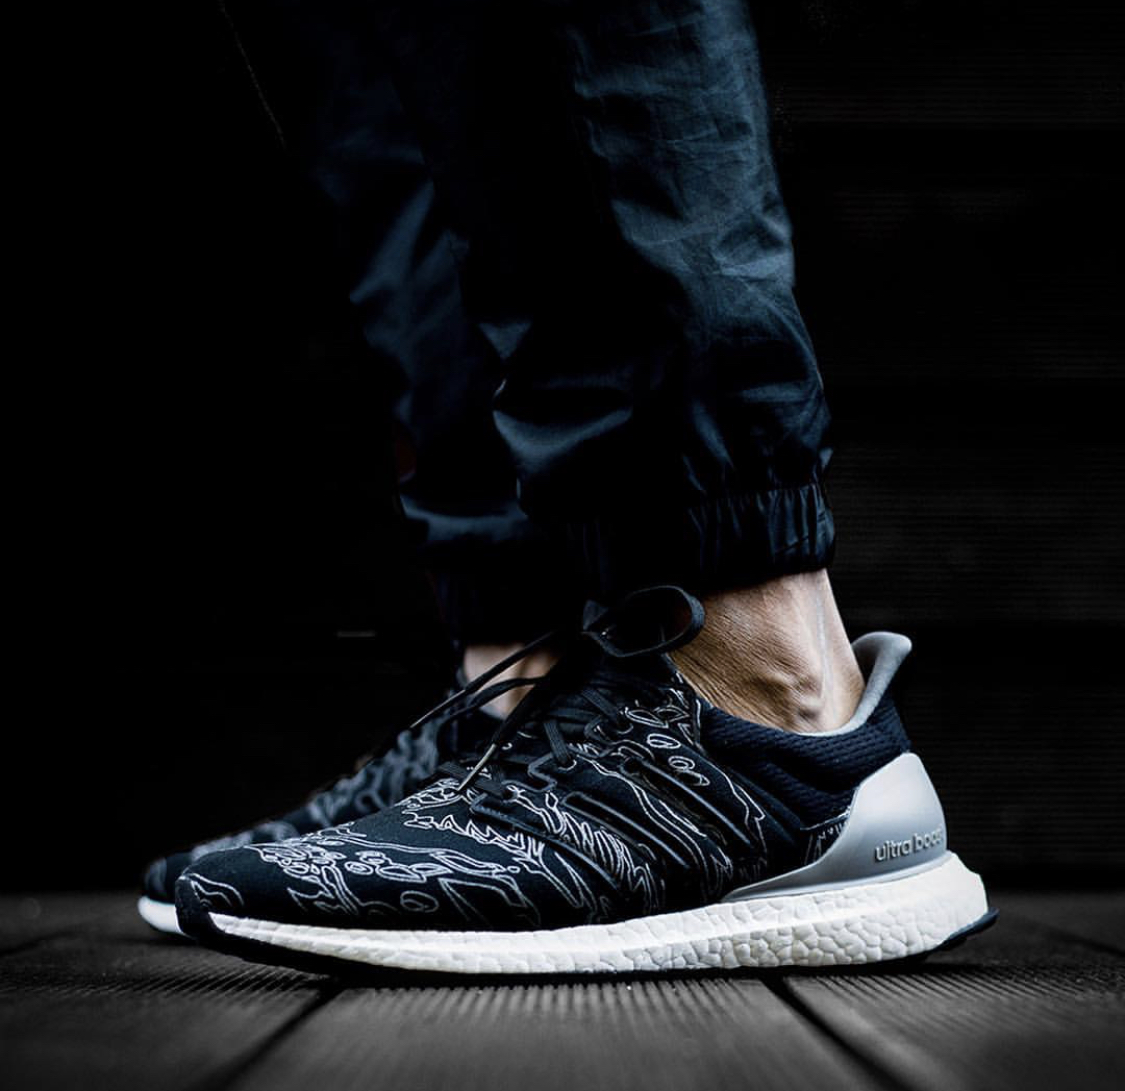 Now Available: UNDFTD x adidas Ultra Boost LTD